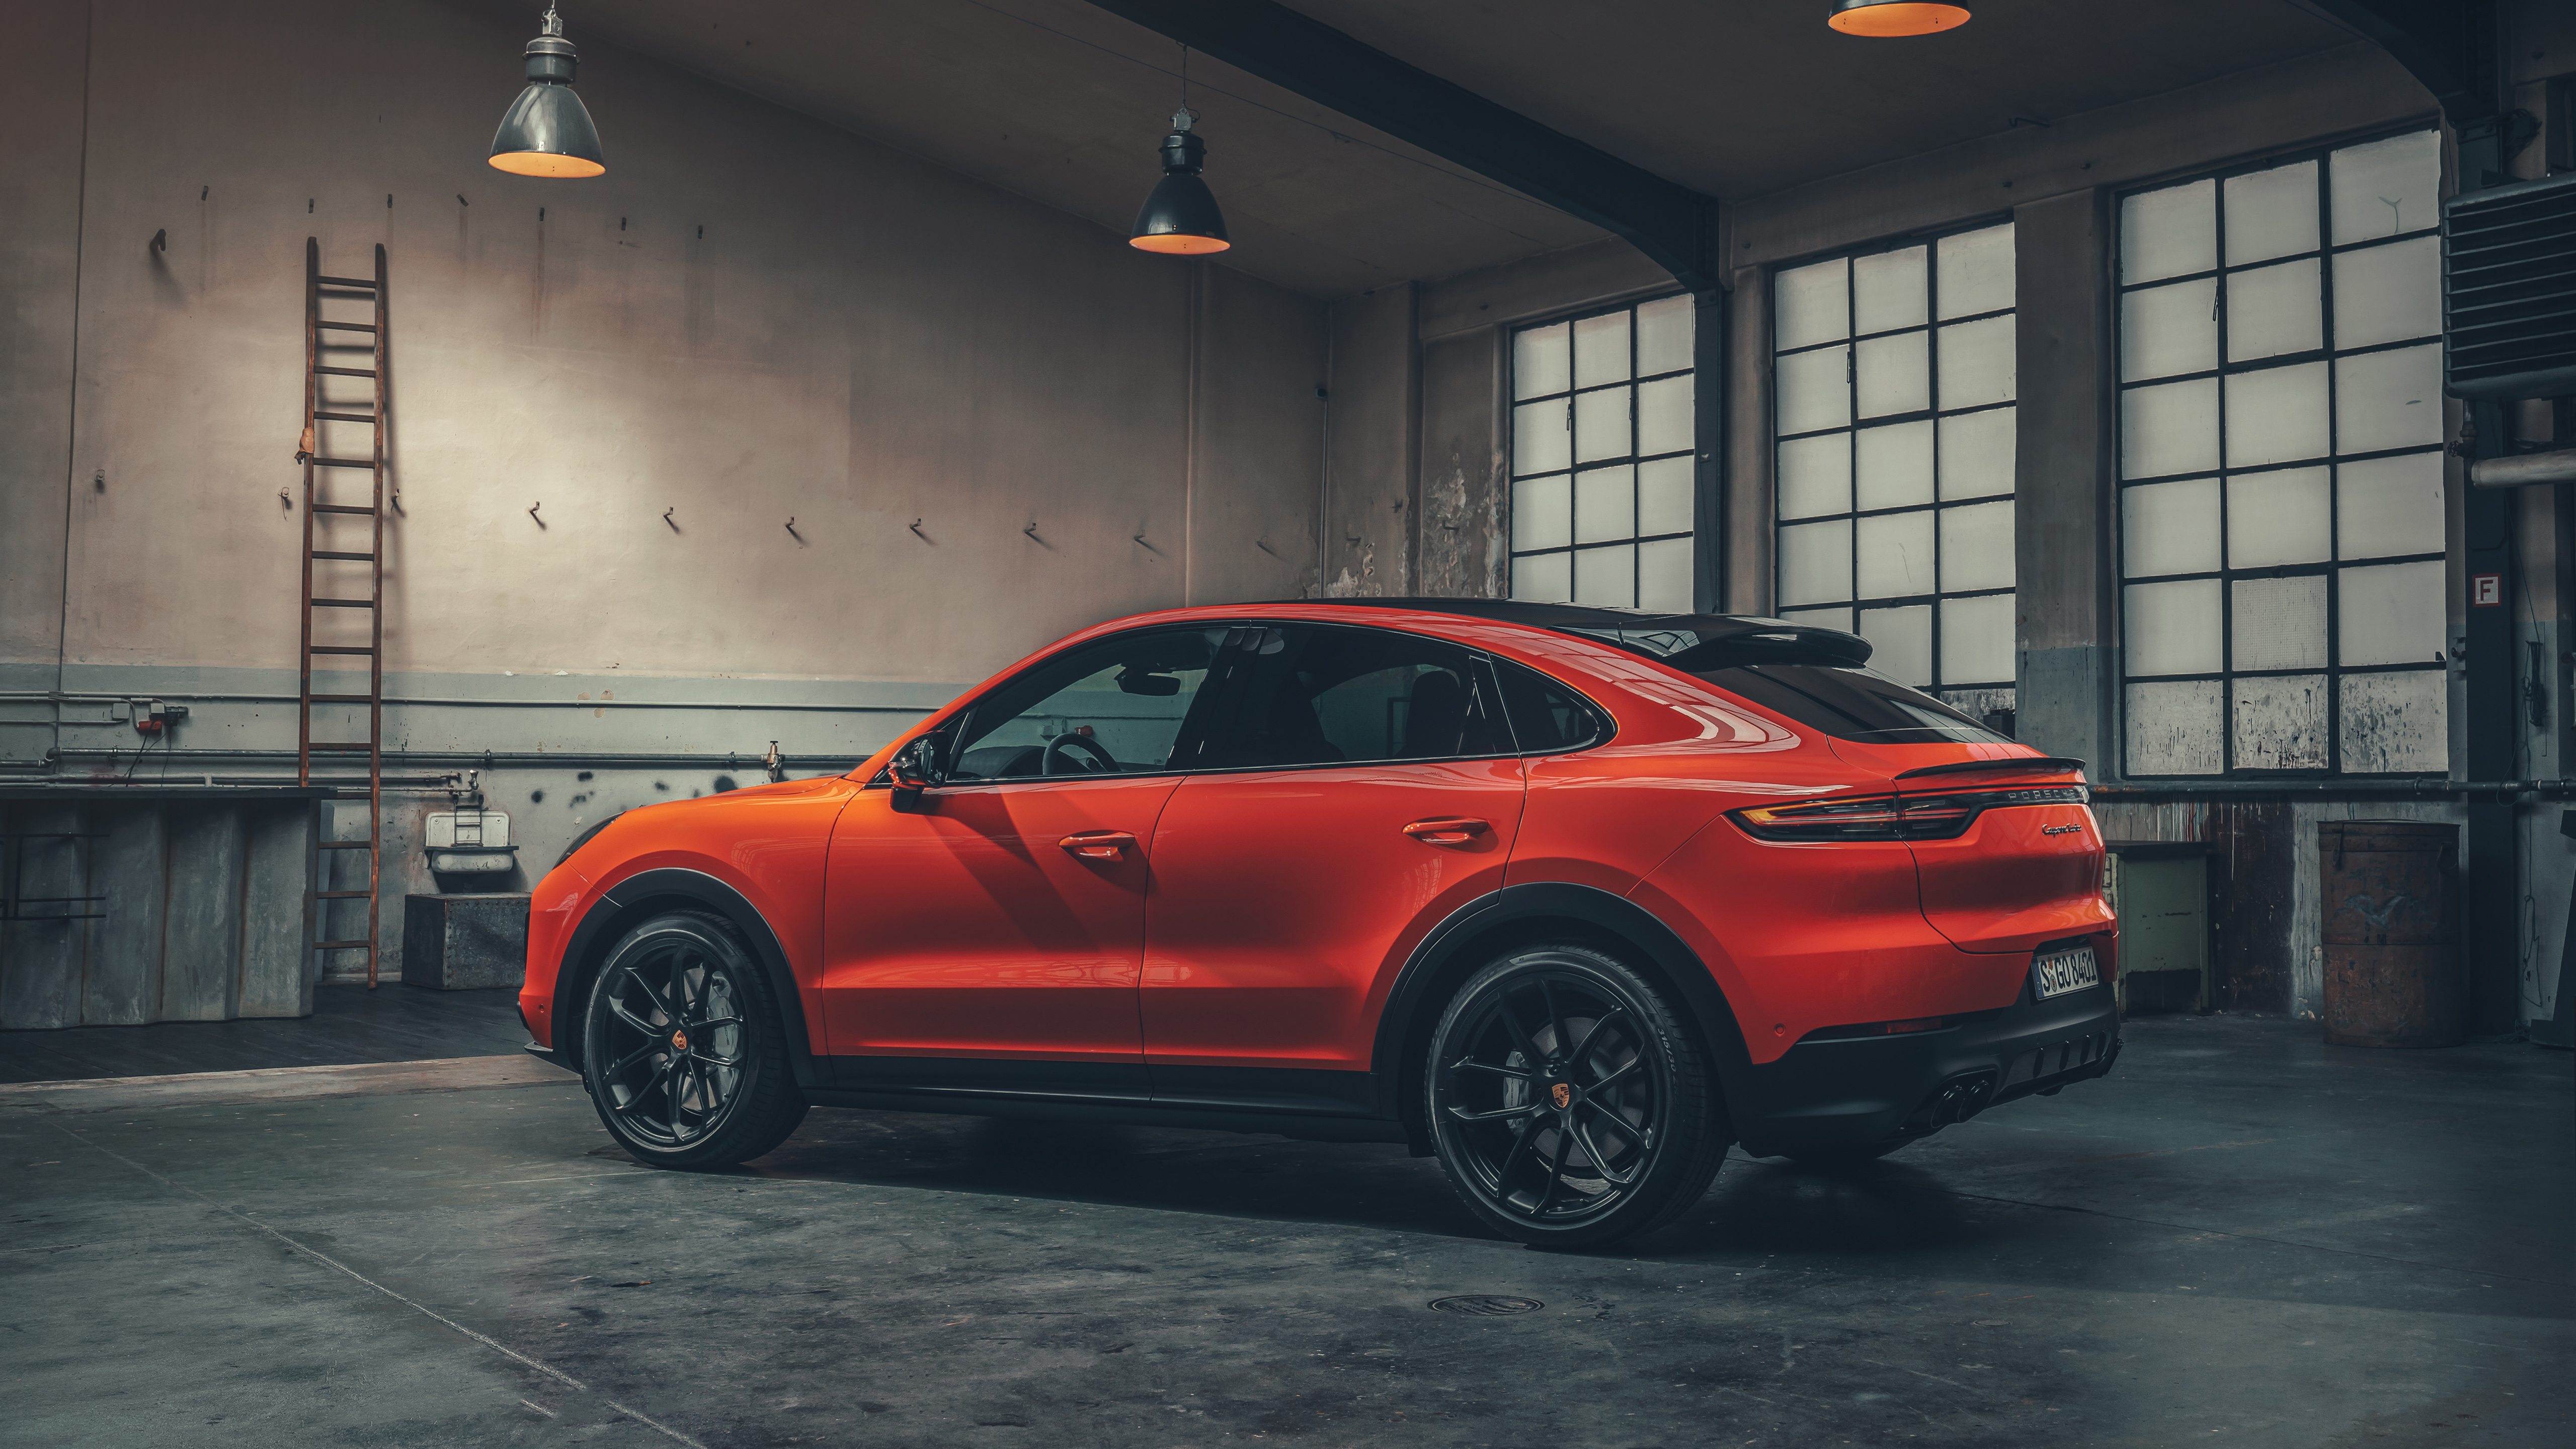 Porsche Cayenne Turbo Coupe 2019 4K 2 Wallpaper HD Car 5120x2880